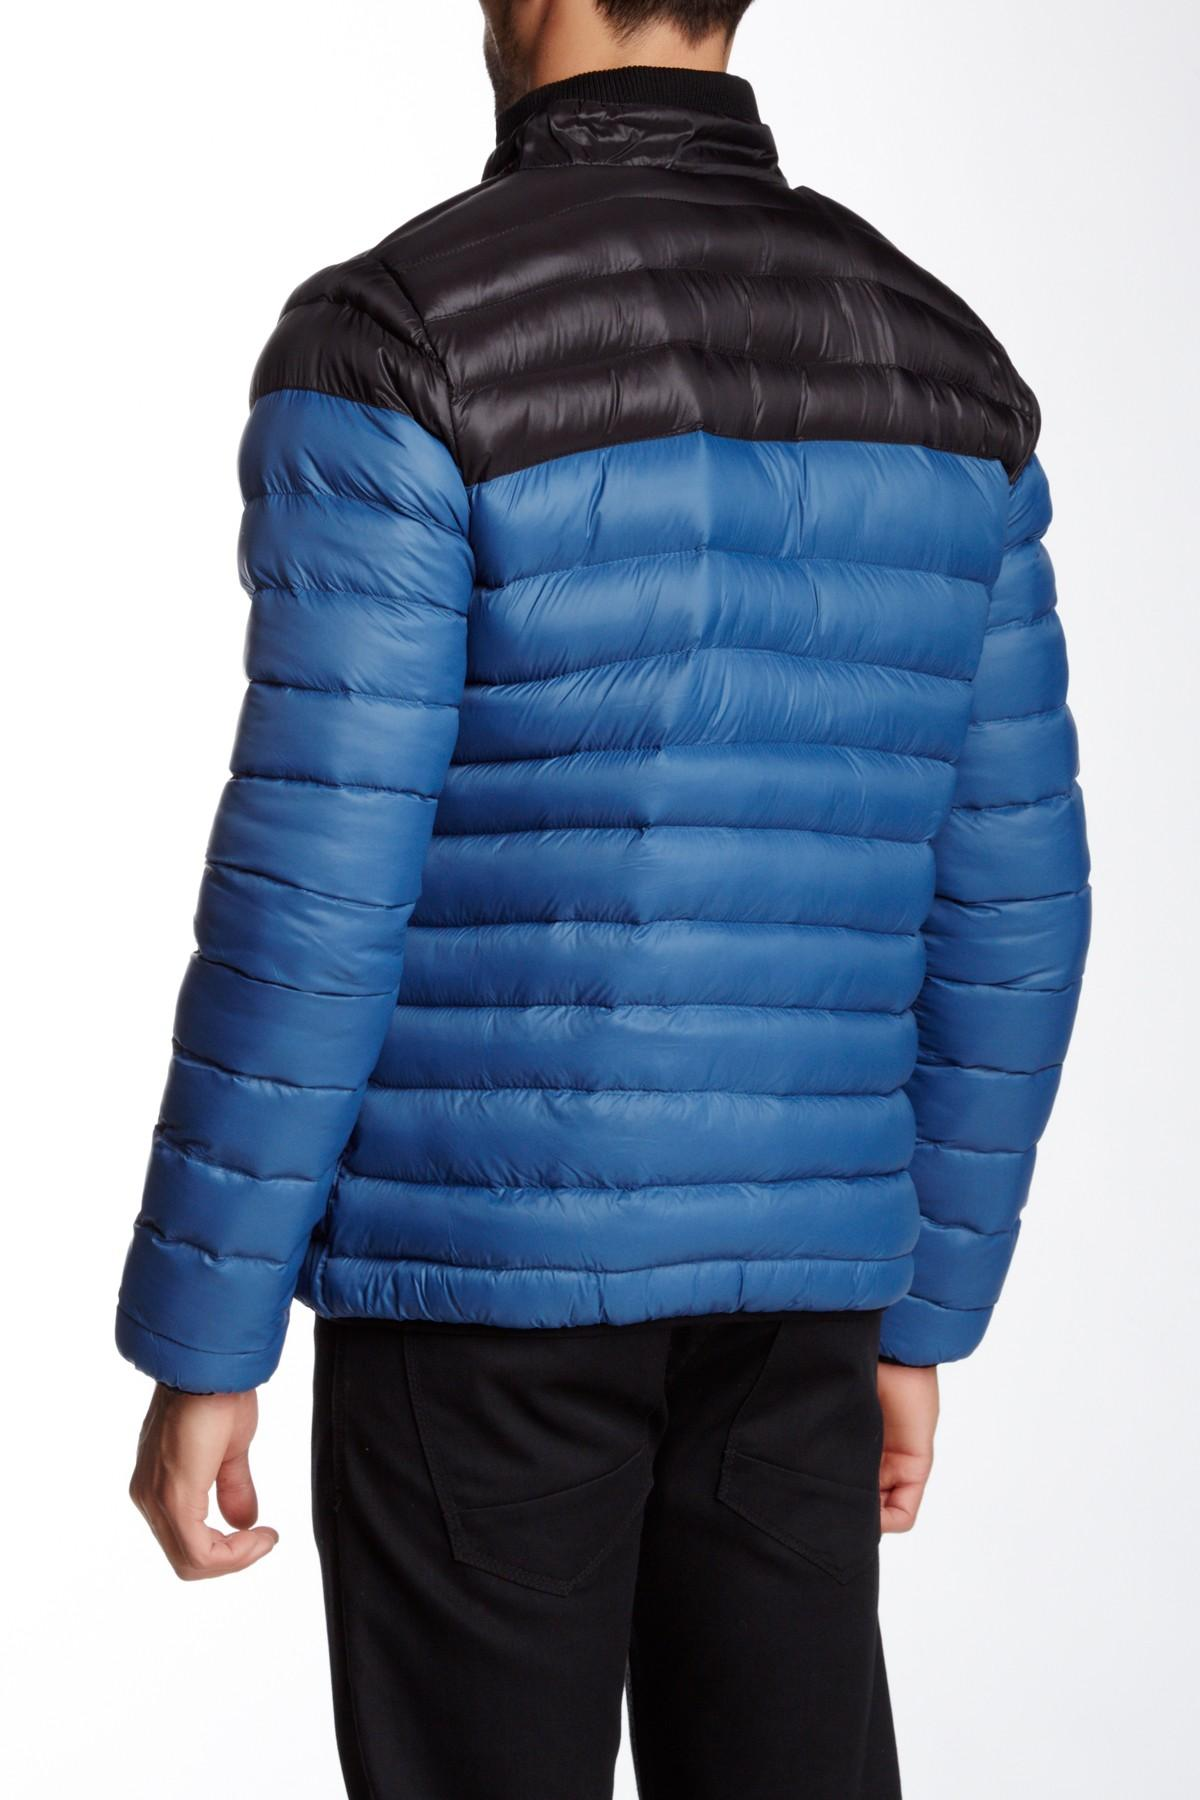 Lyst Indigo Star Quilted Bomber Jacket In Blue For Men